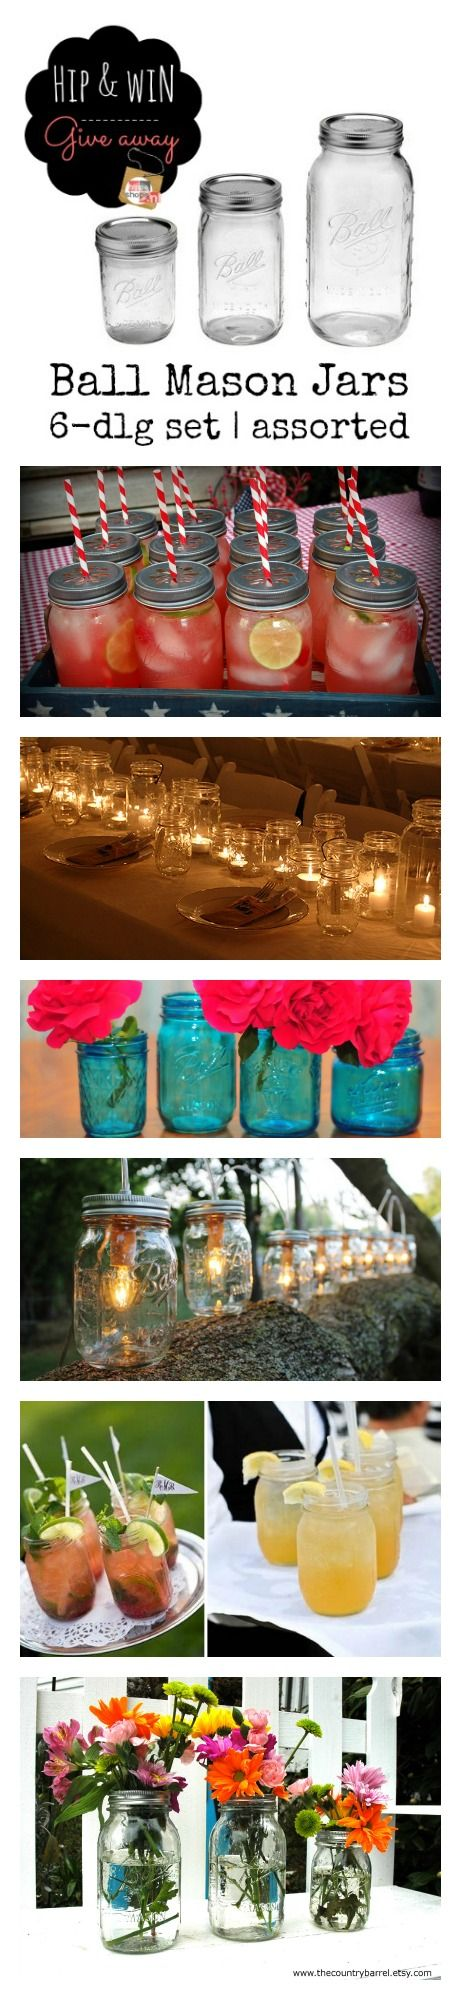 Ball Mason Jars - inspiring ideas